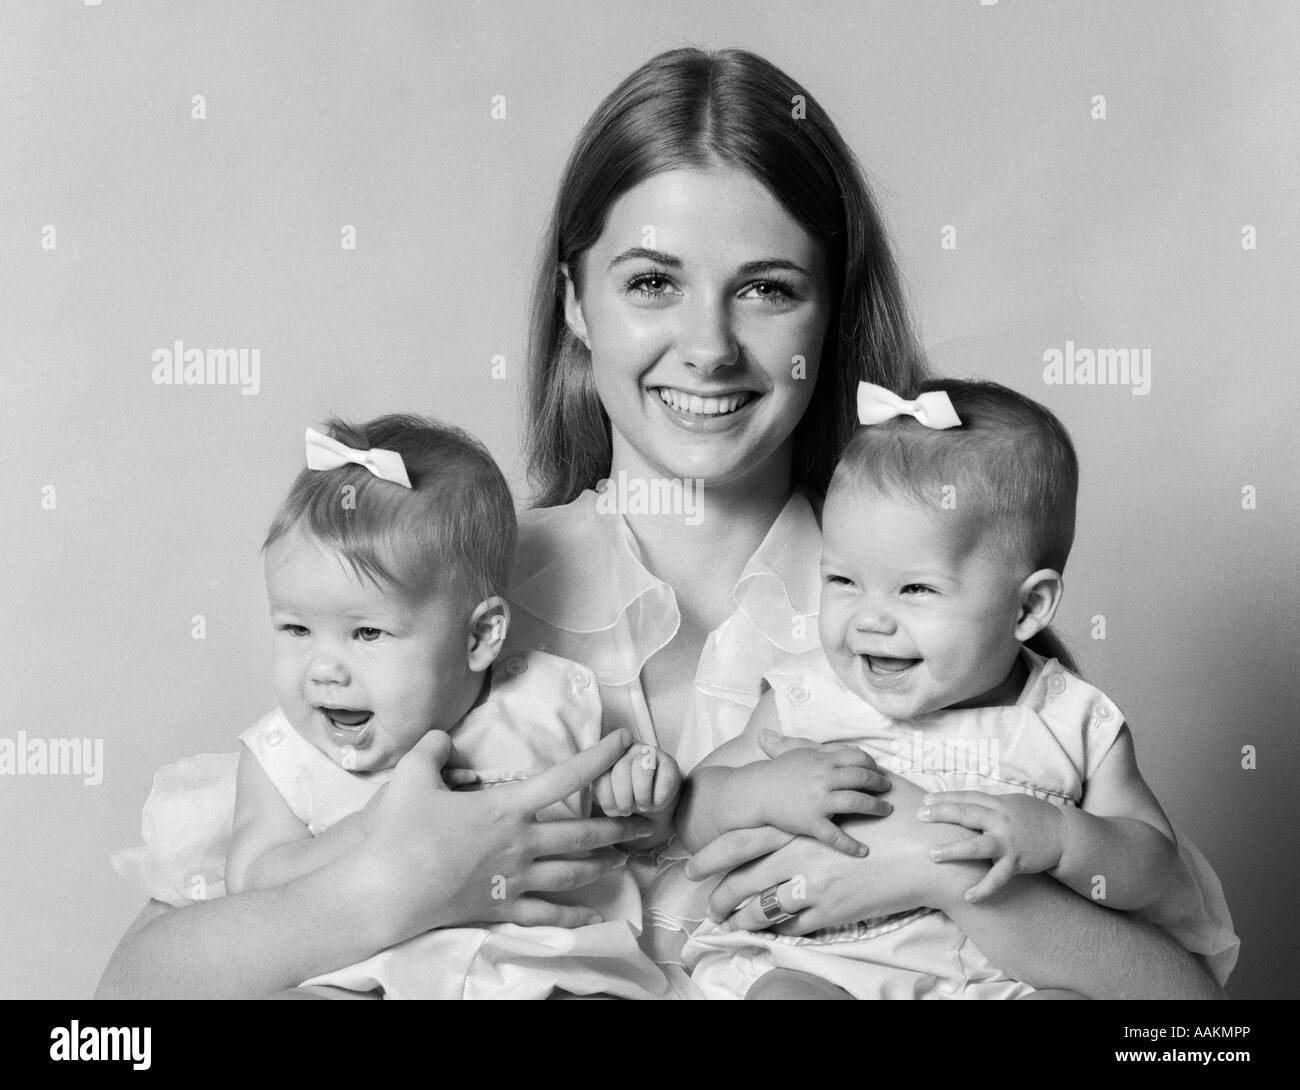 1970s PORTRAIT OF SMILING MOTHER WITH ARMS AROUND TWIN GIRLS WITH BOWS IN HAIR LOOKING AT CAMERA - Stock Image